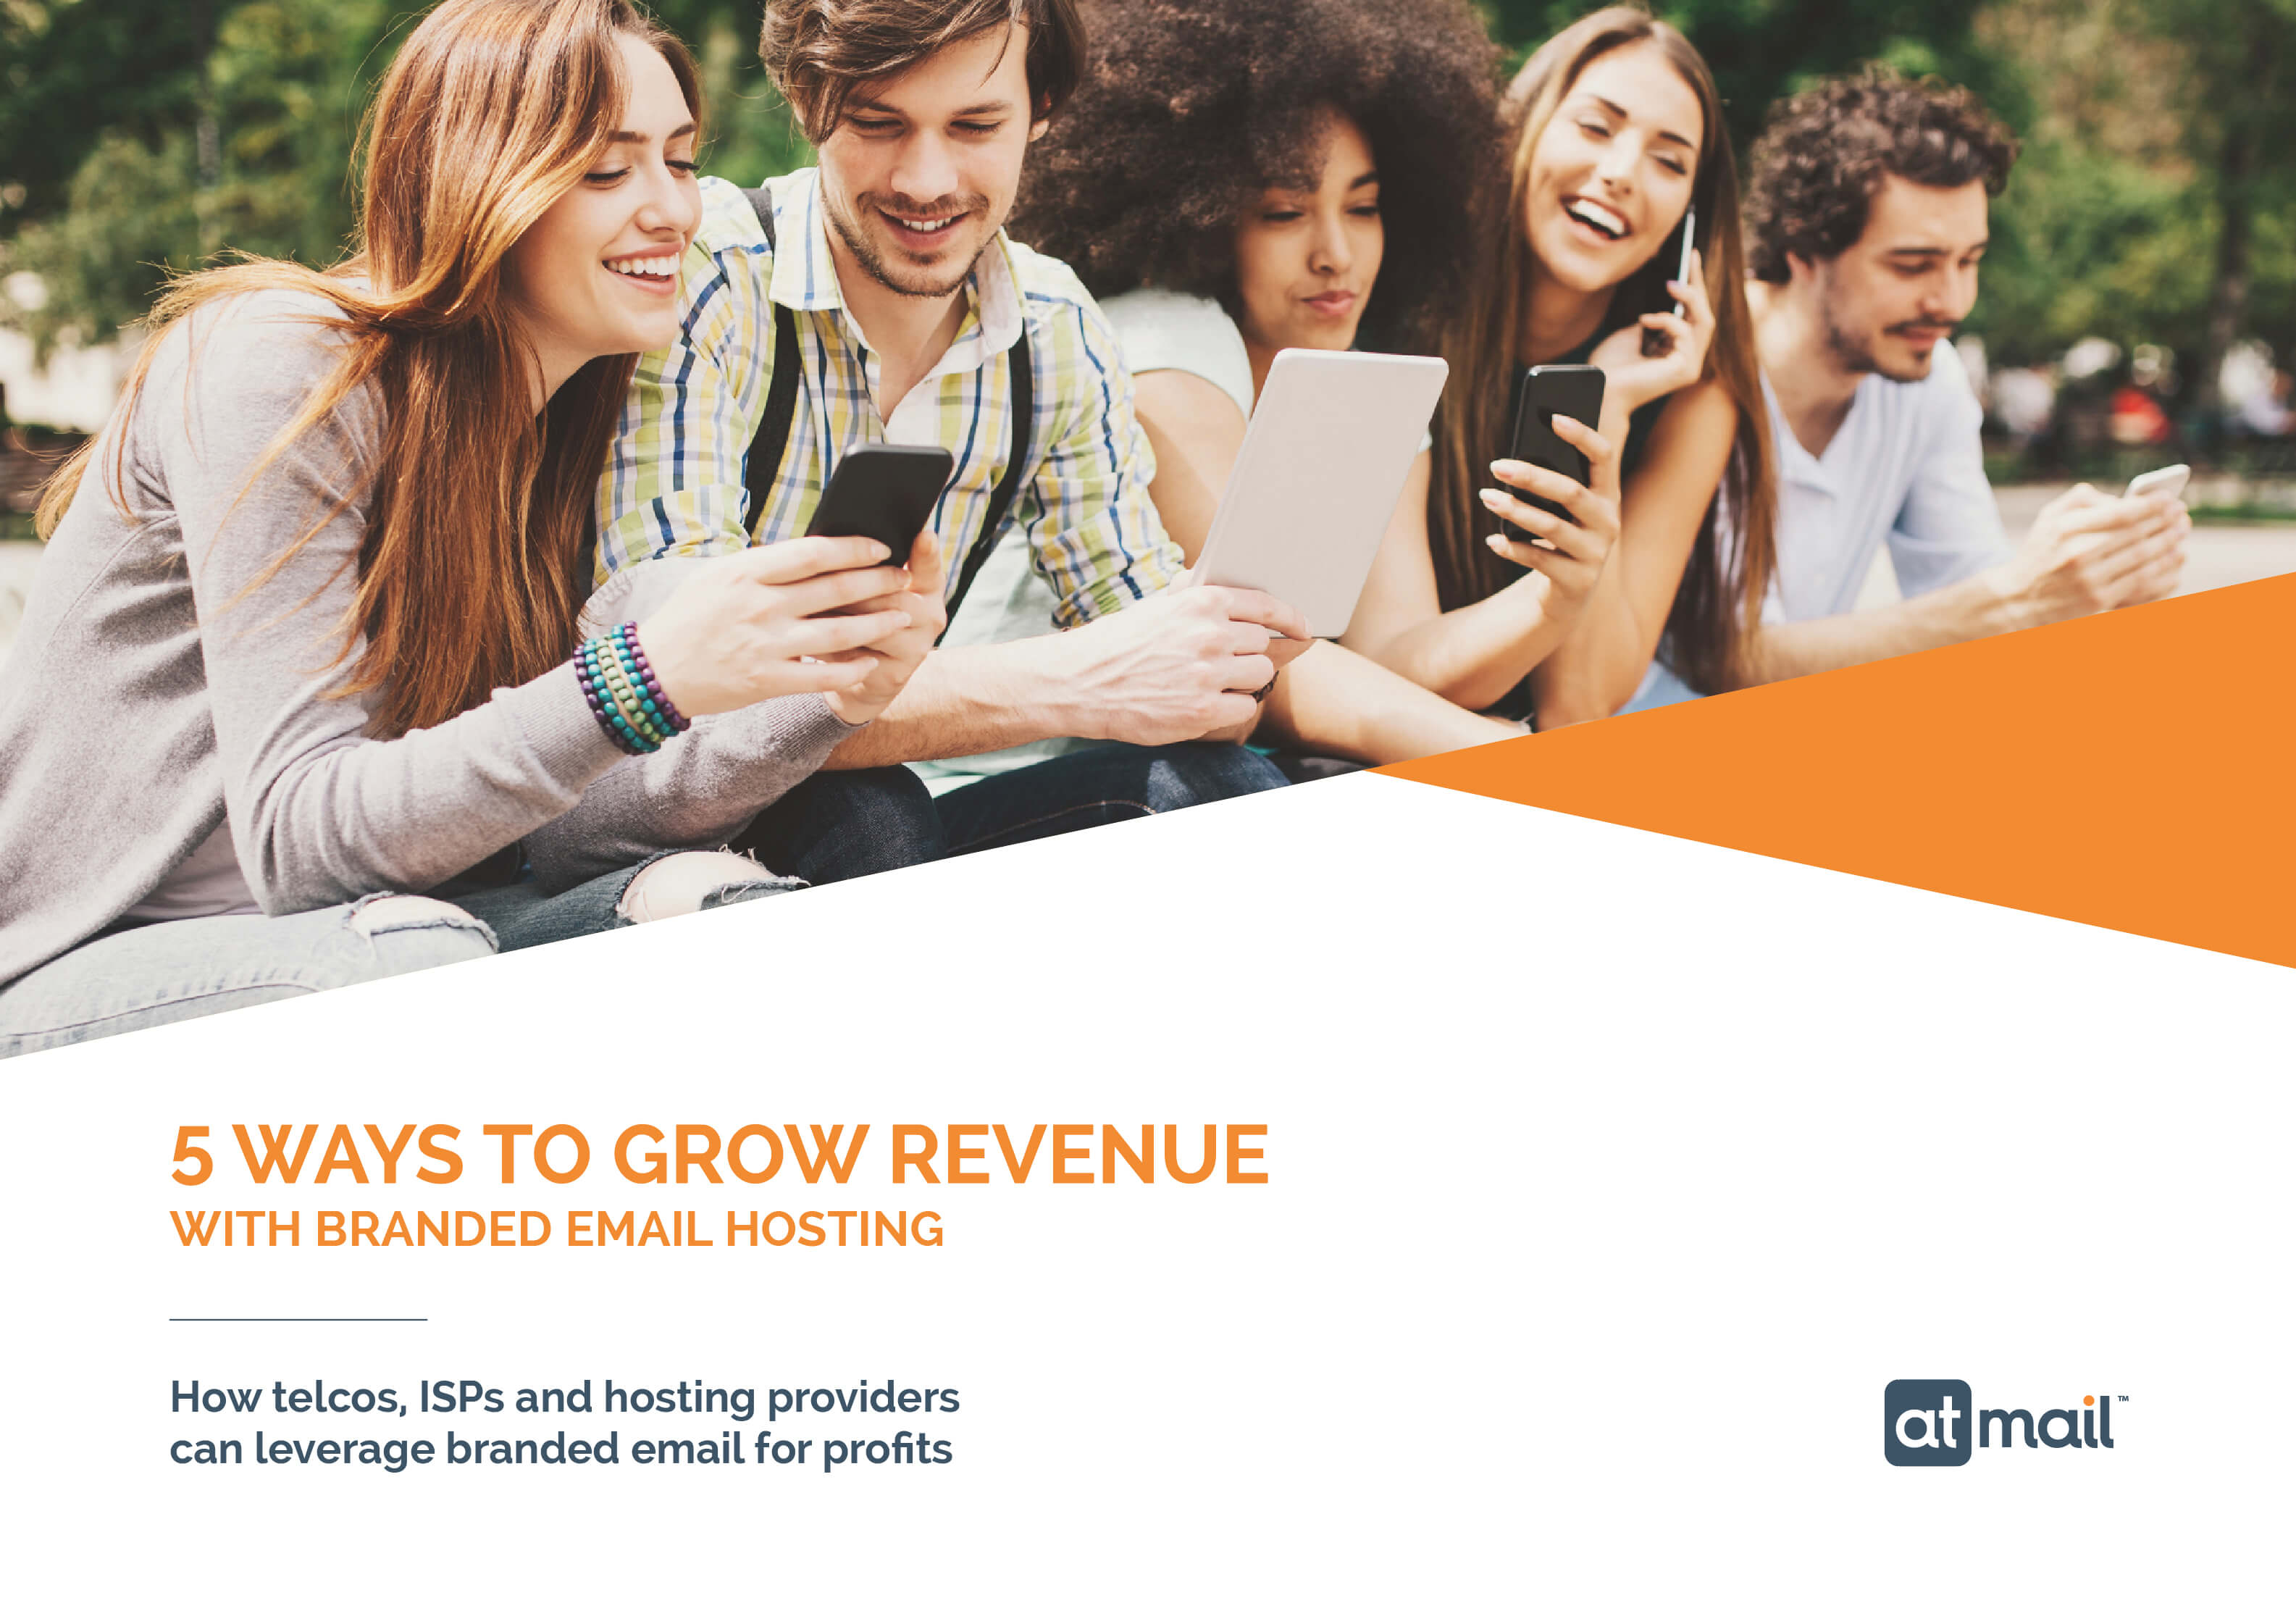 5 Ways to Grow Revenue - atmail email experts